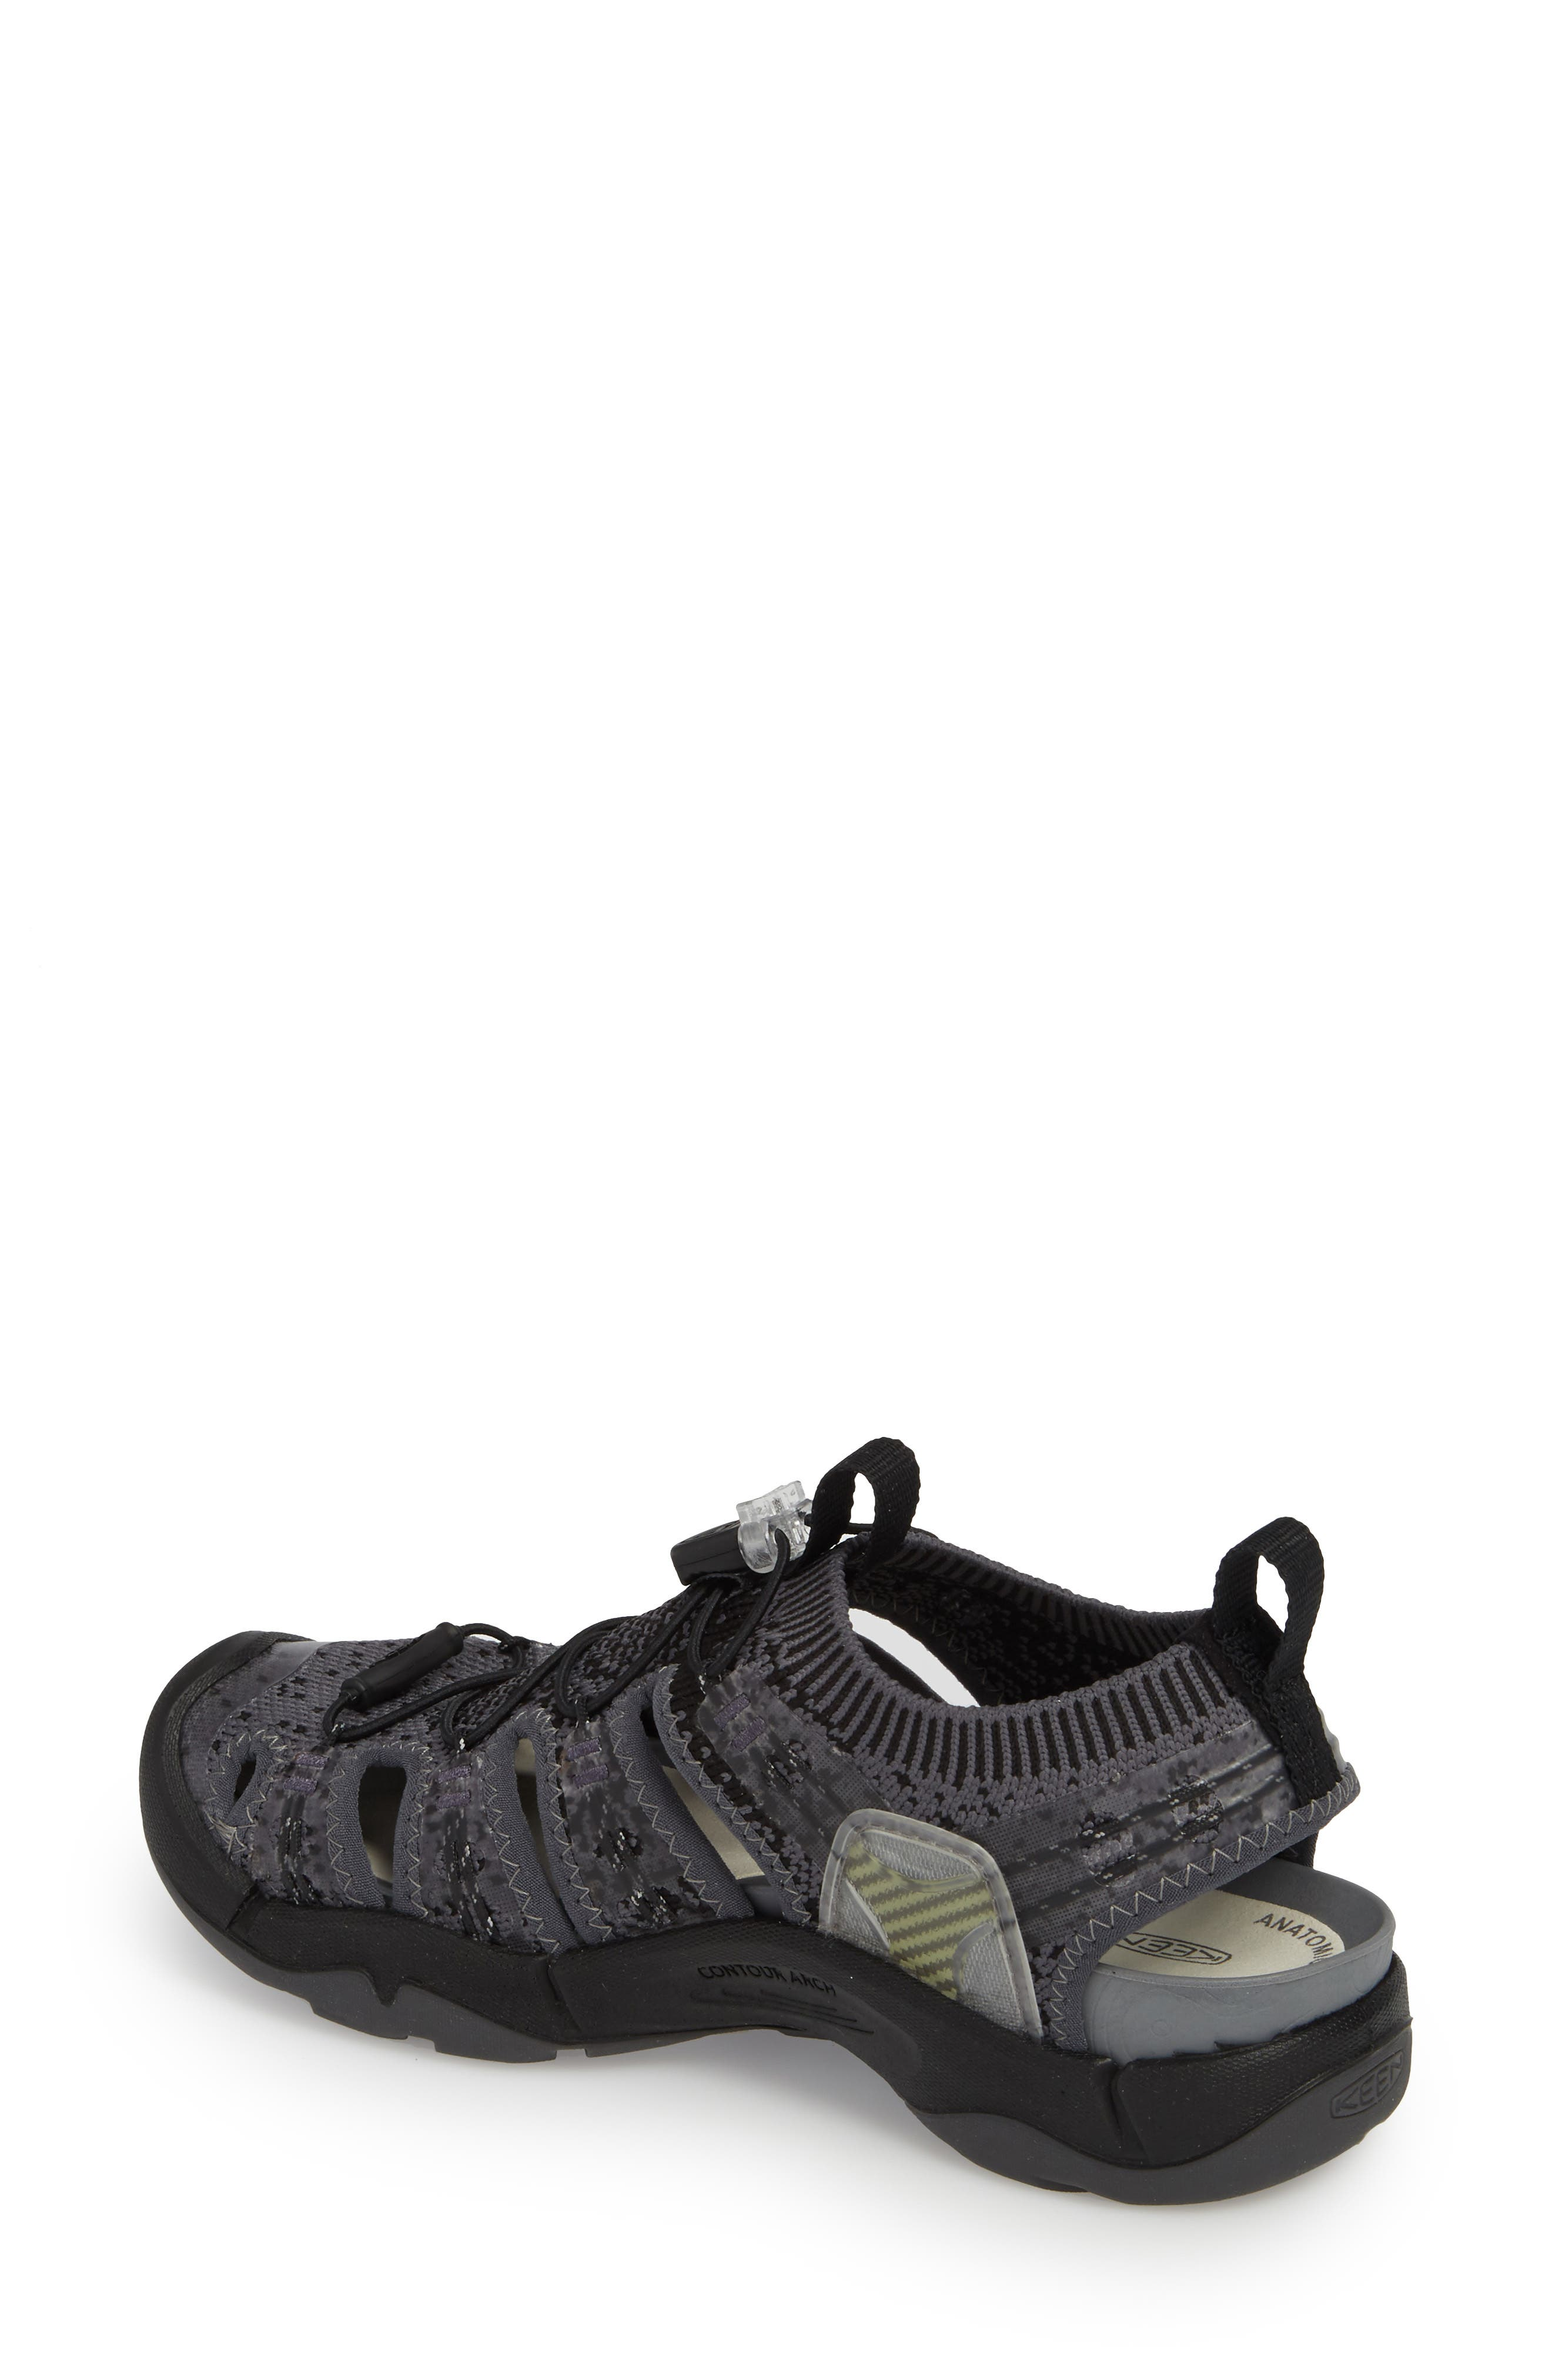 EVOFIT One Sandal,                             Alternate thumbnail 2, color,                             HEATHERED BLACK/ MAGNET